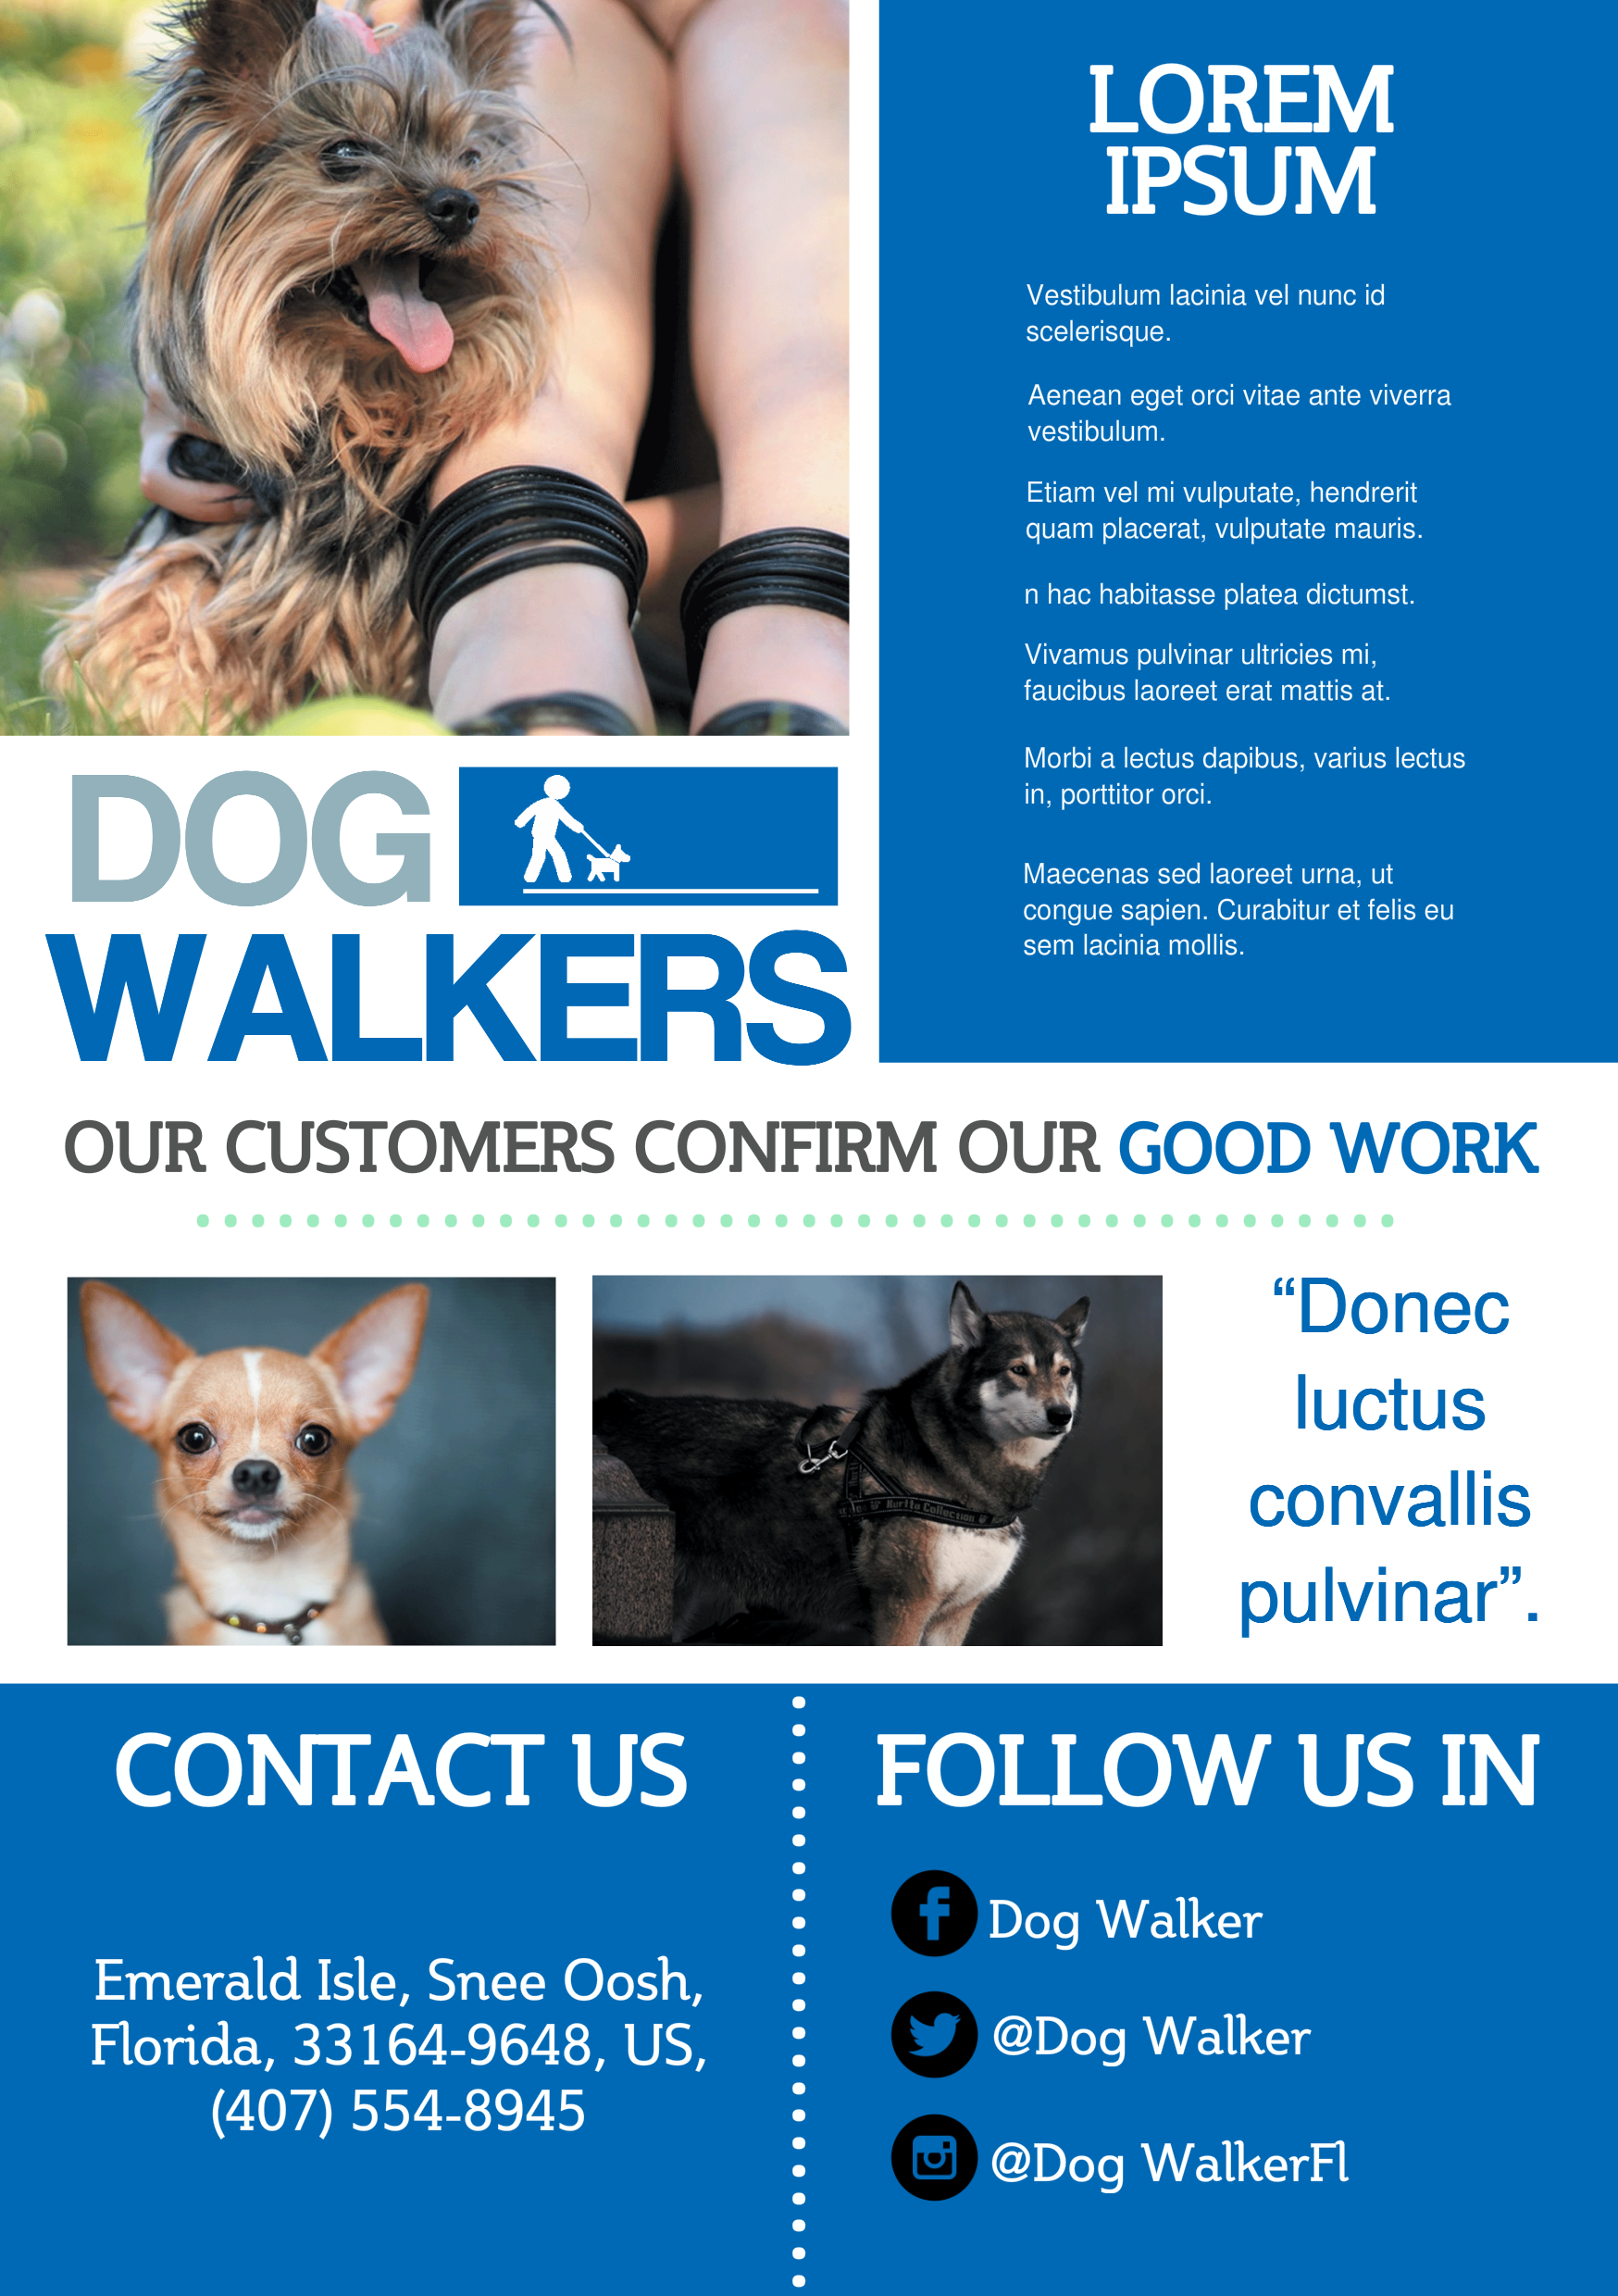 Dog Walker A Promotional Flyer HttpPremadevideosComAFlyer